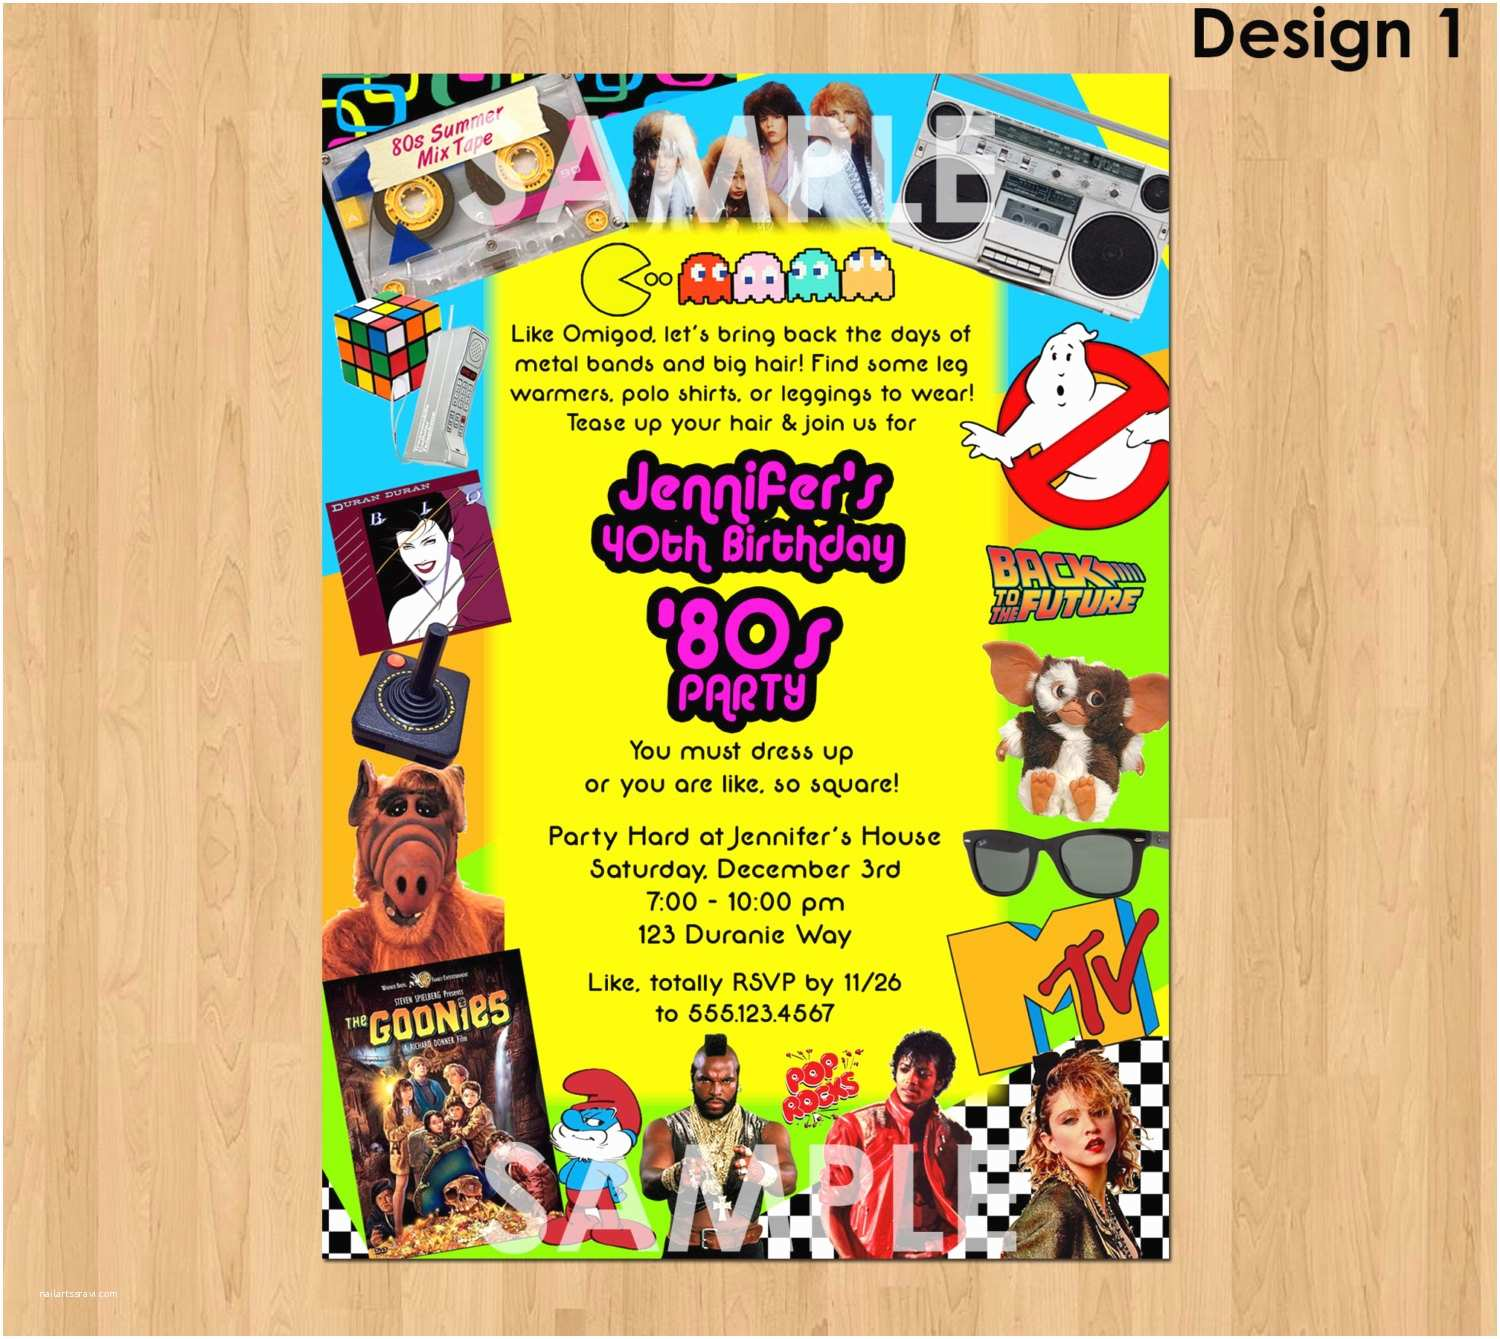 80s Party Invitations Template Free 80s Birthday Party Invitations